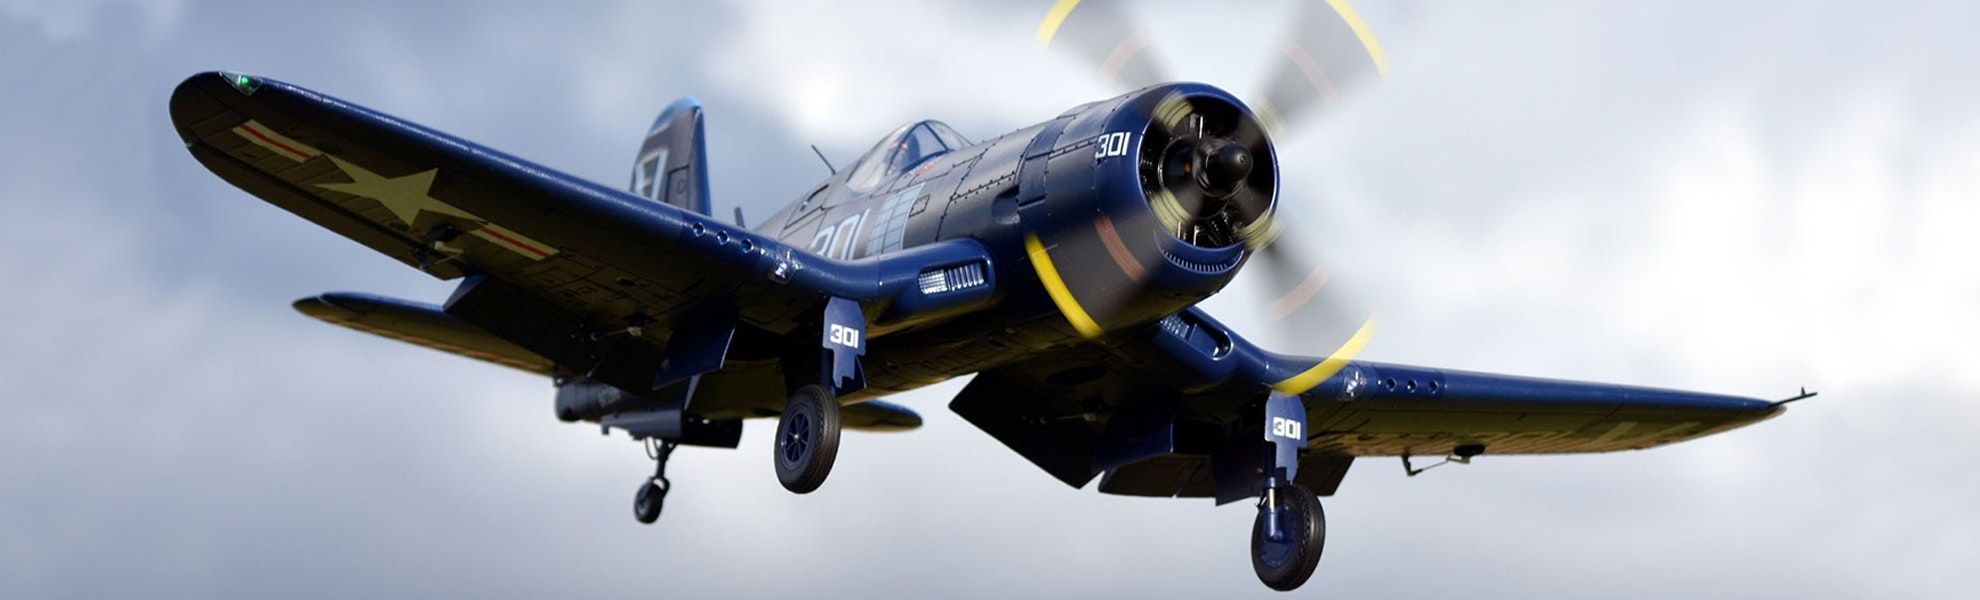 FMS F4U Corsair 1700mm PNP